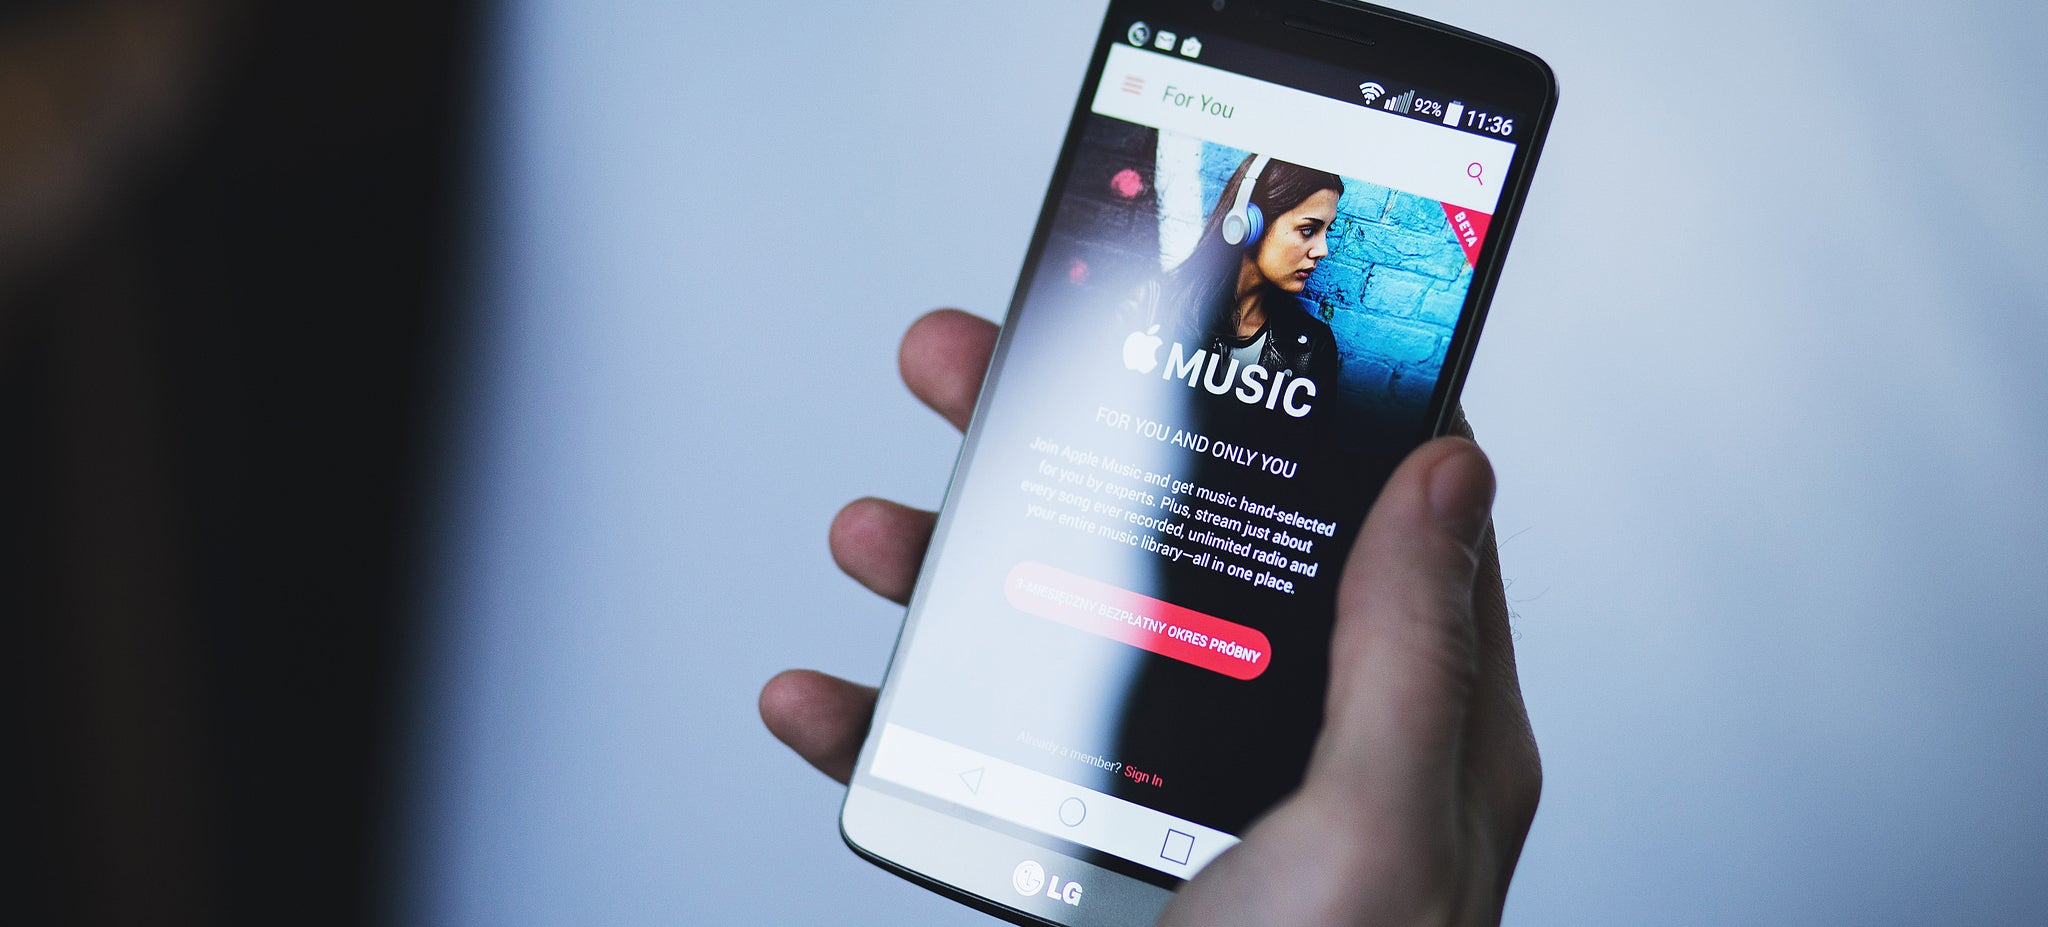 apple apple-music music streaming